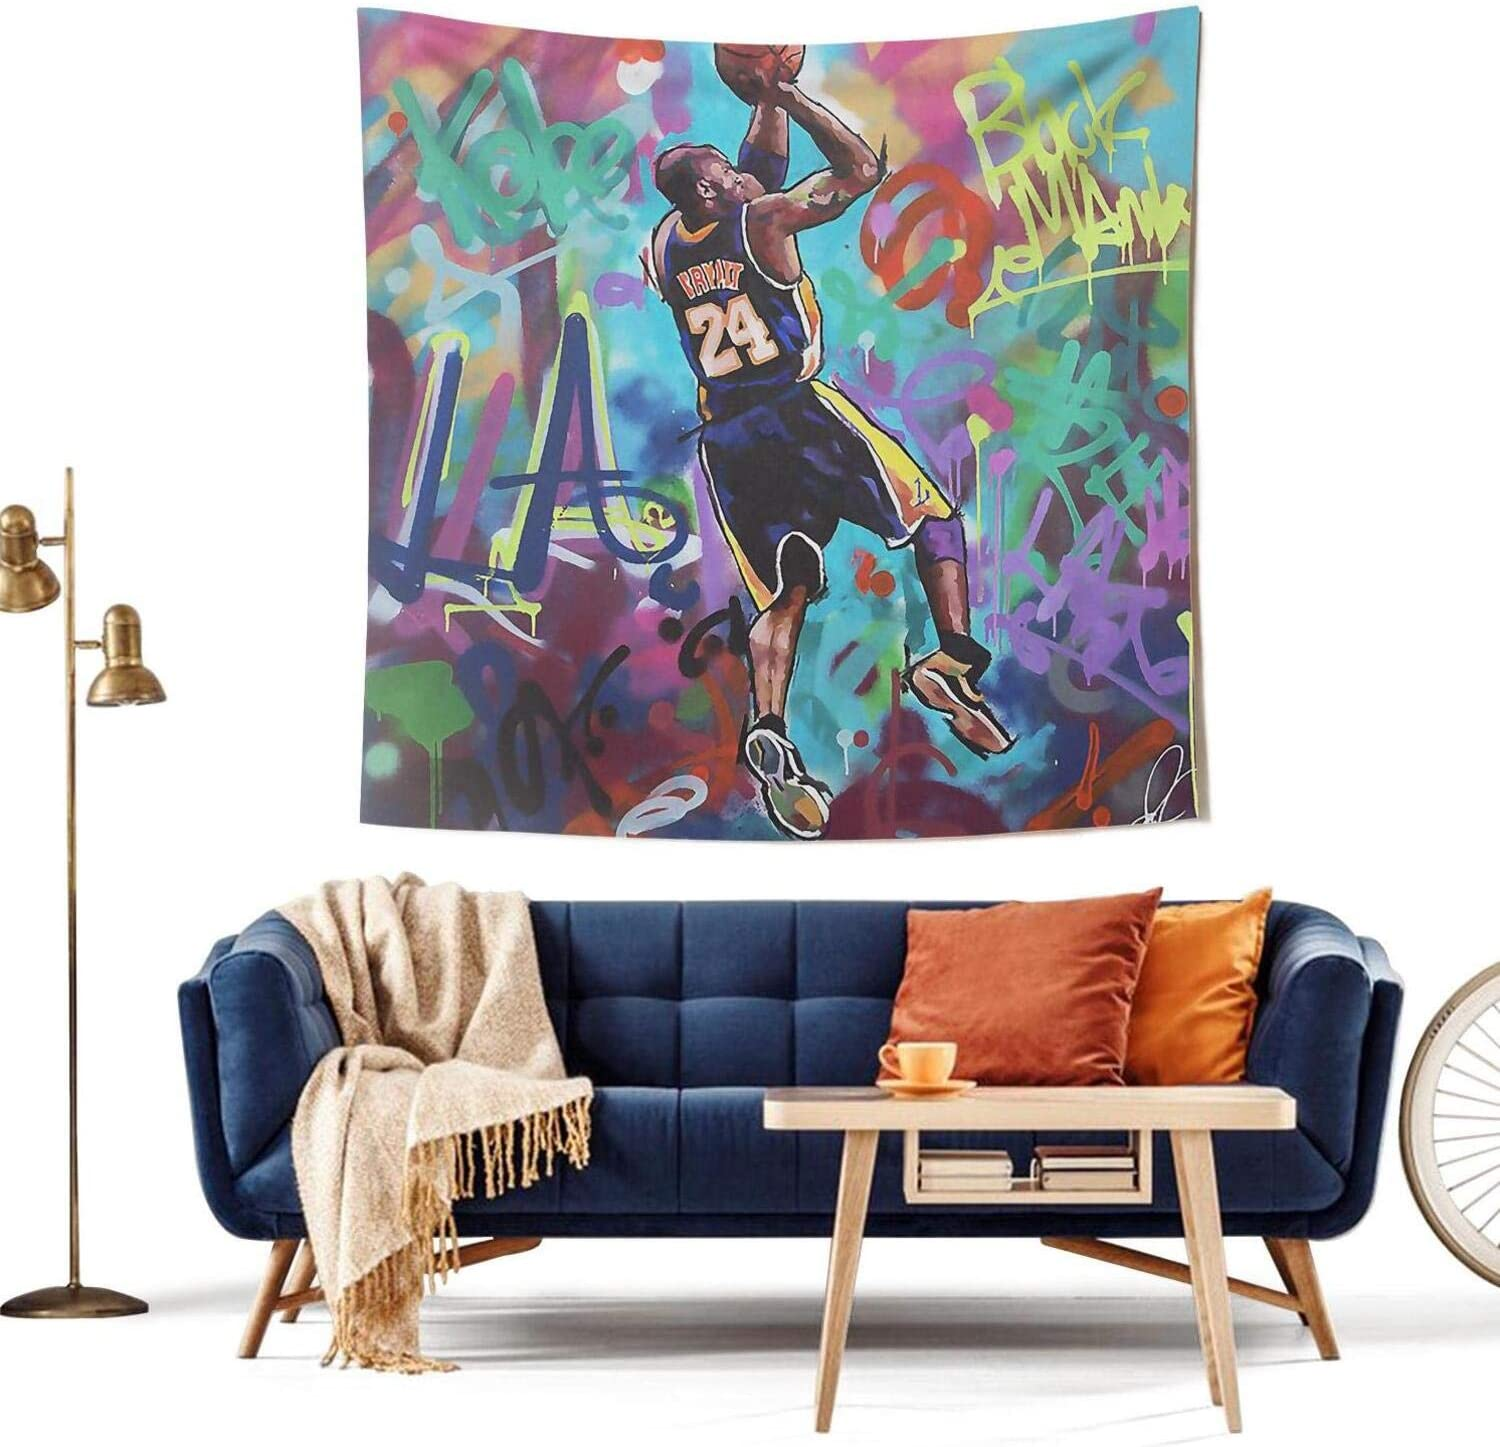 COOLGOOD LA Legend 8 24 Basketball-Player Tapestry,Wall Hanging Bedroom Decor, for Men Women Teen Girl College Dorm Room Decor Livingroom Tapestrys 5959 inch